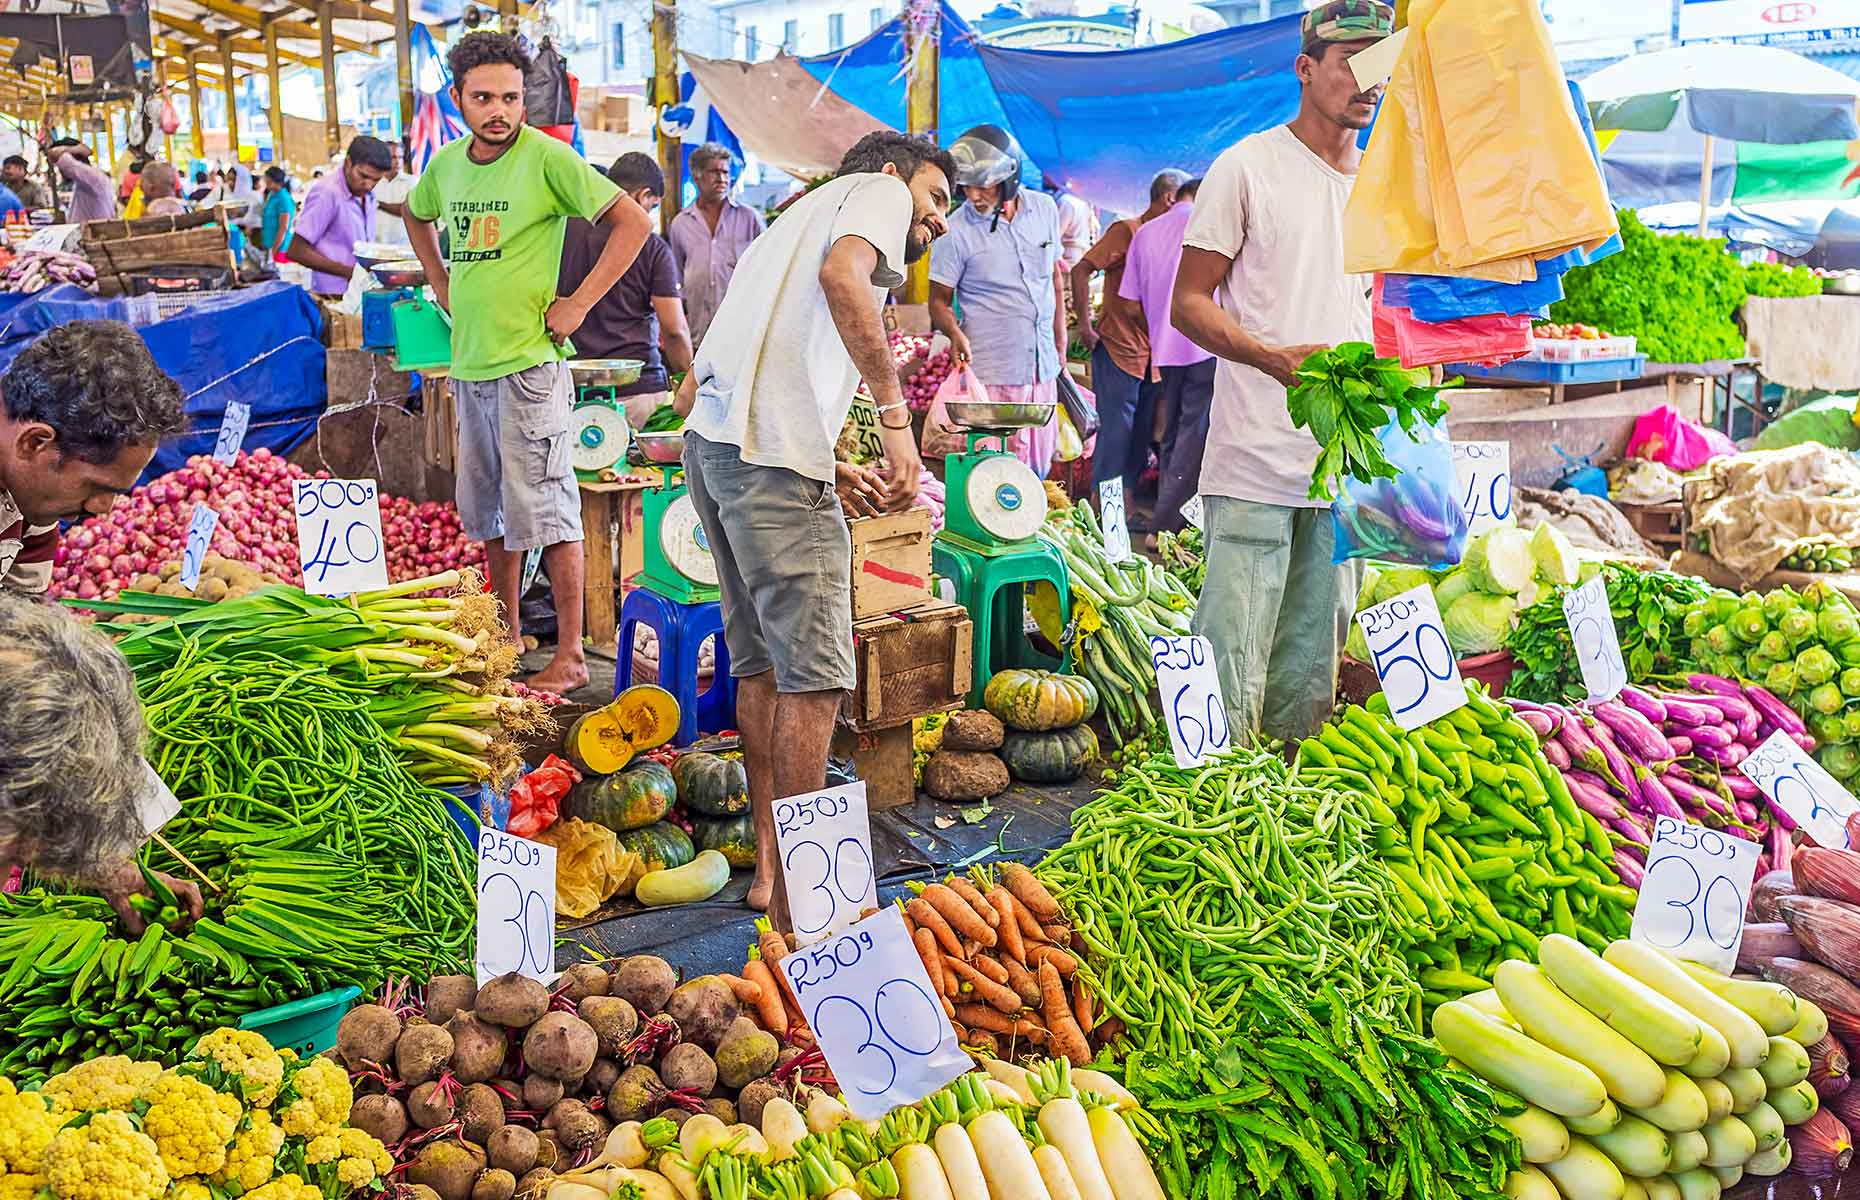 Pettah market in Colombo offers stall after stall of locally grown fruit and veg